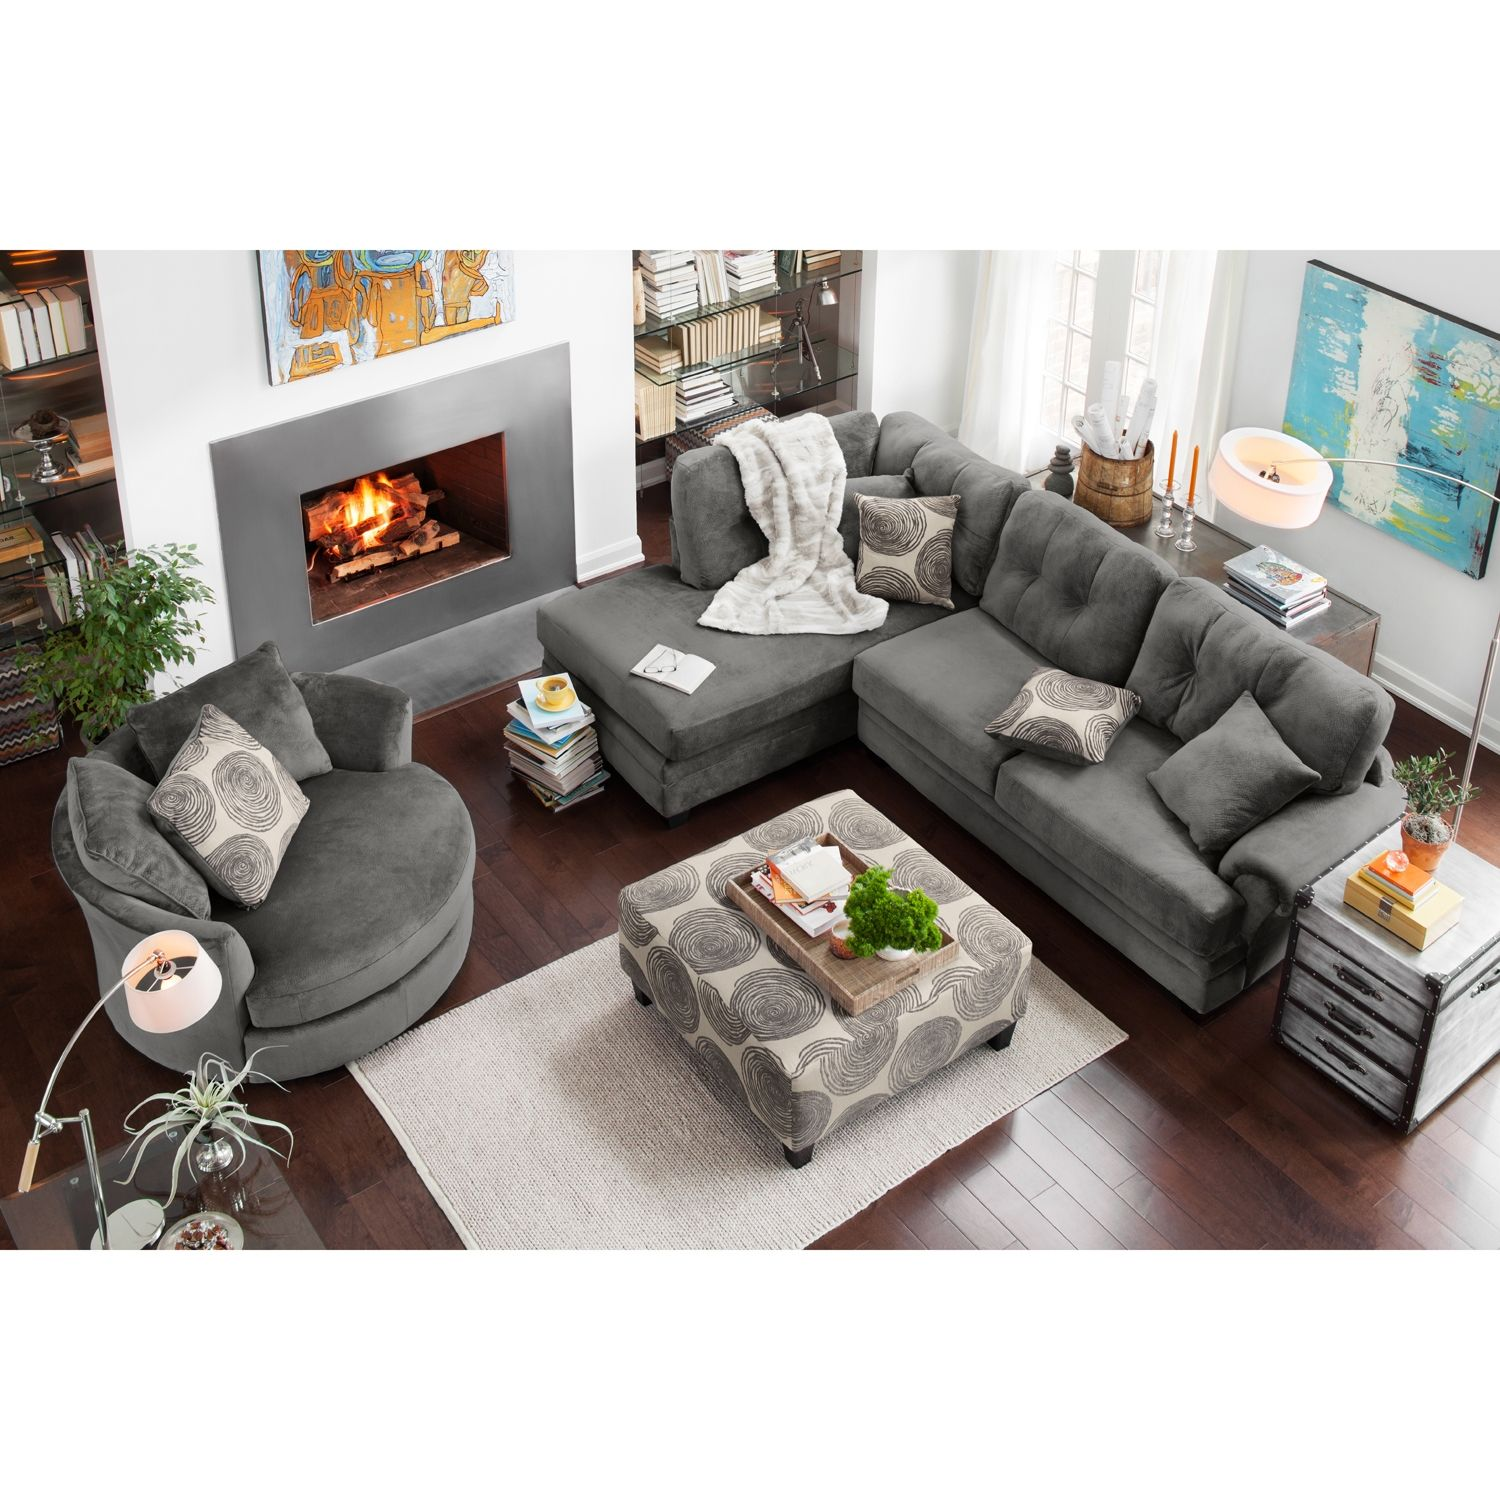 Living room furniture cordelle 2 piece left facing chaise sectional and swivel chair set gray